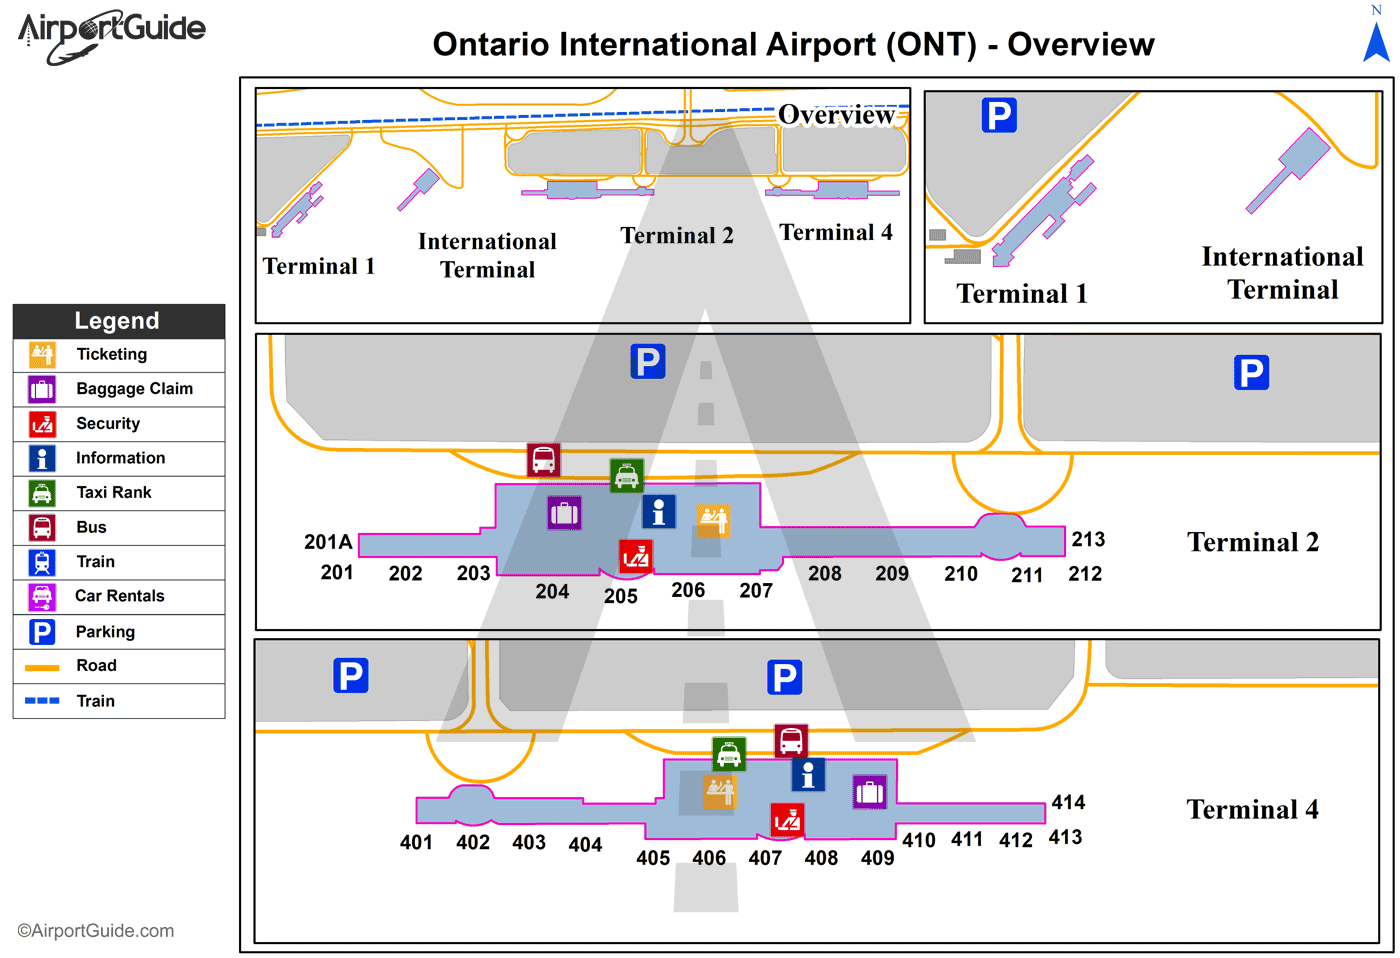 Ontario - Ontario International (ONT) Airport Terminal Map - Overview